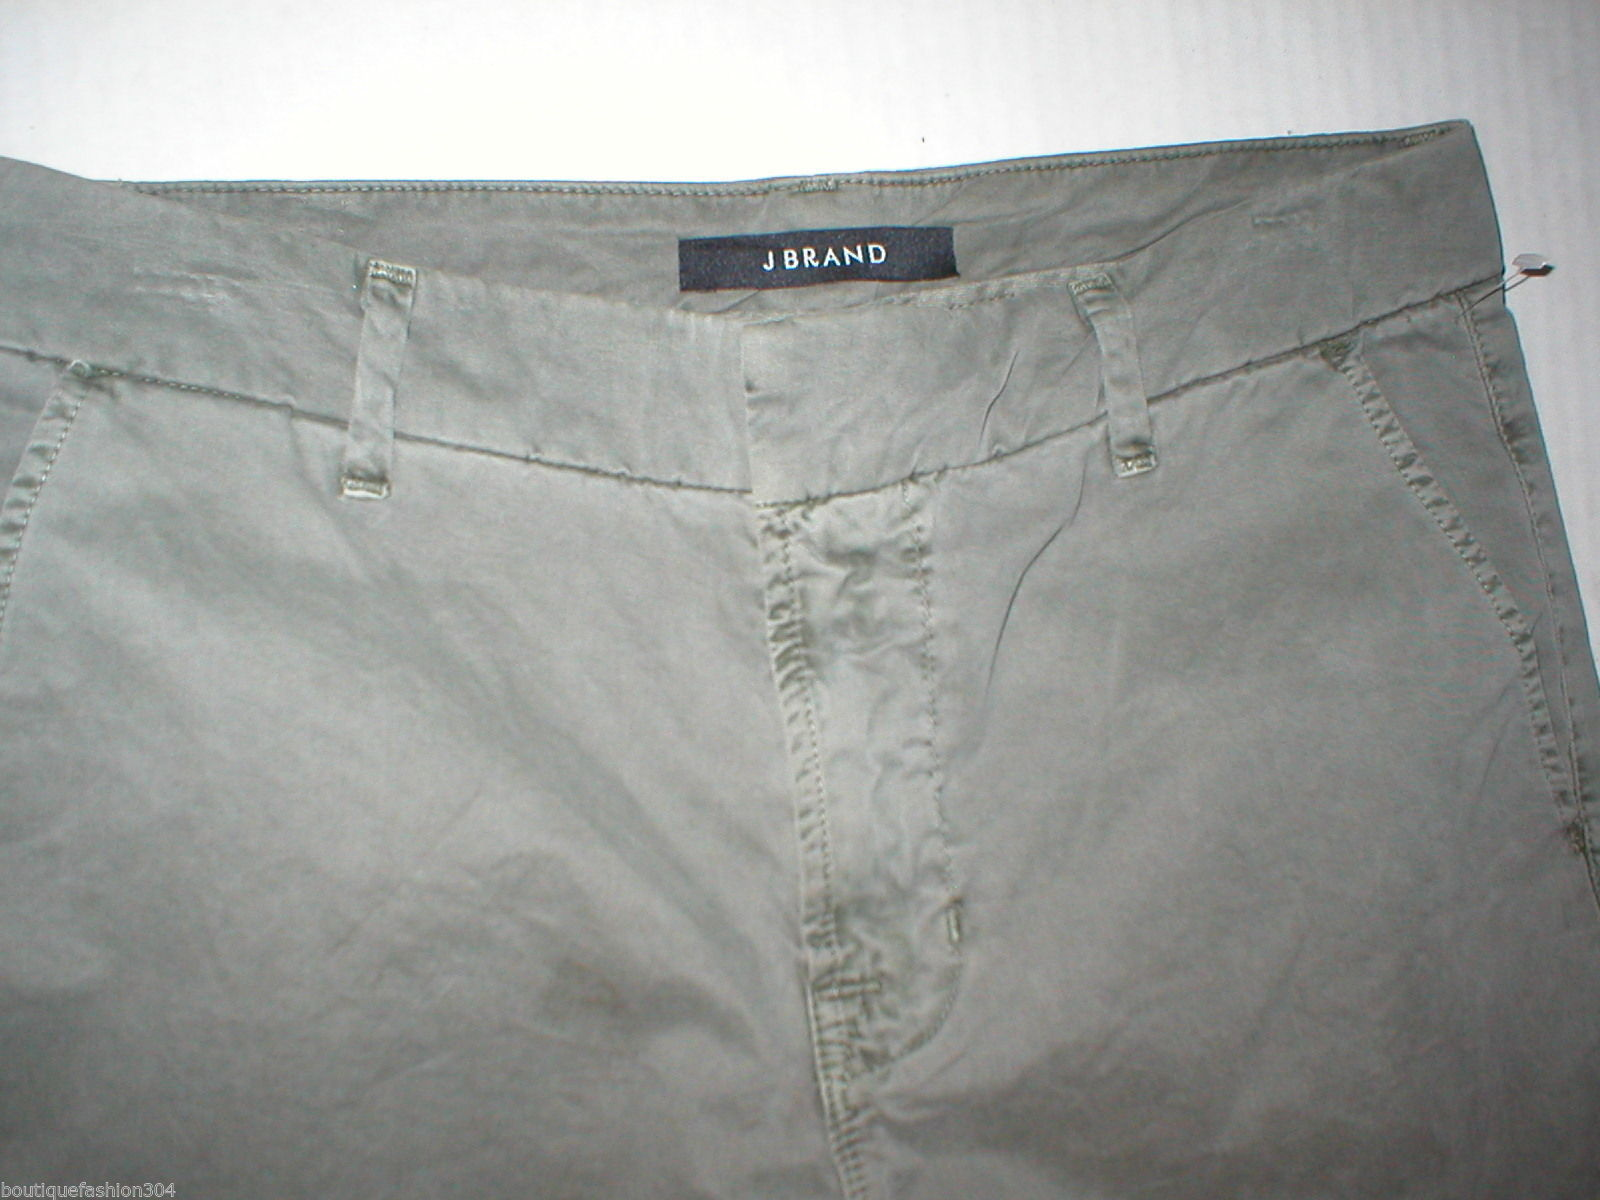 New J Brand Jeans Relaxed Womens Parker Vin Fort 25 Chino Pant Army Green Cotto image 2